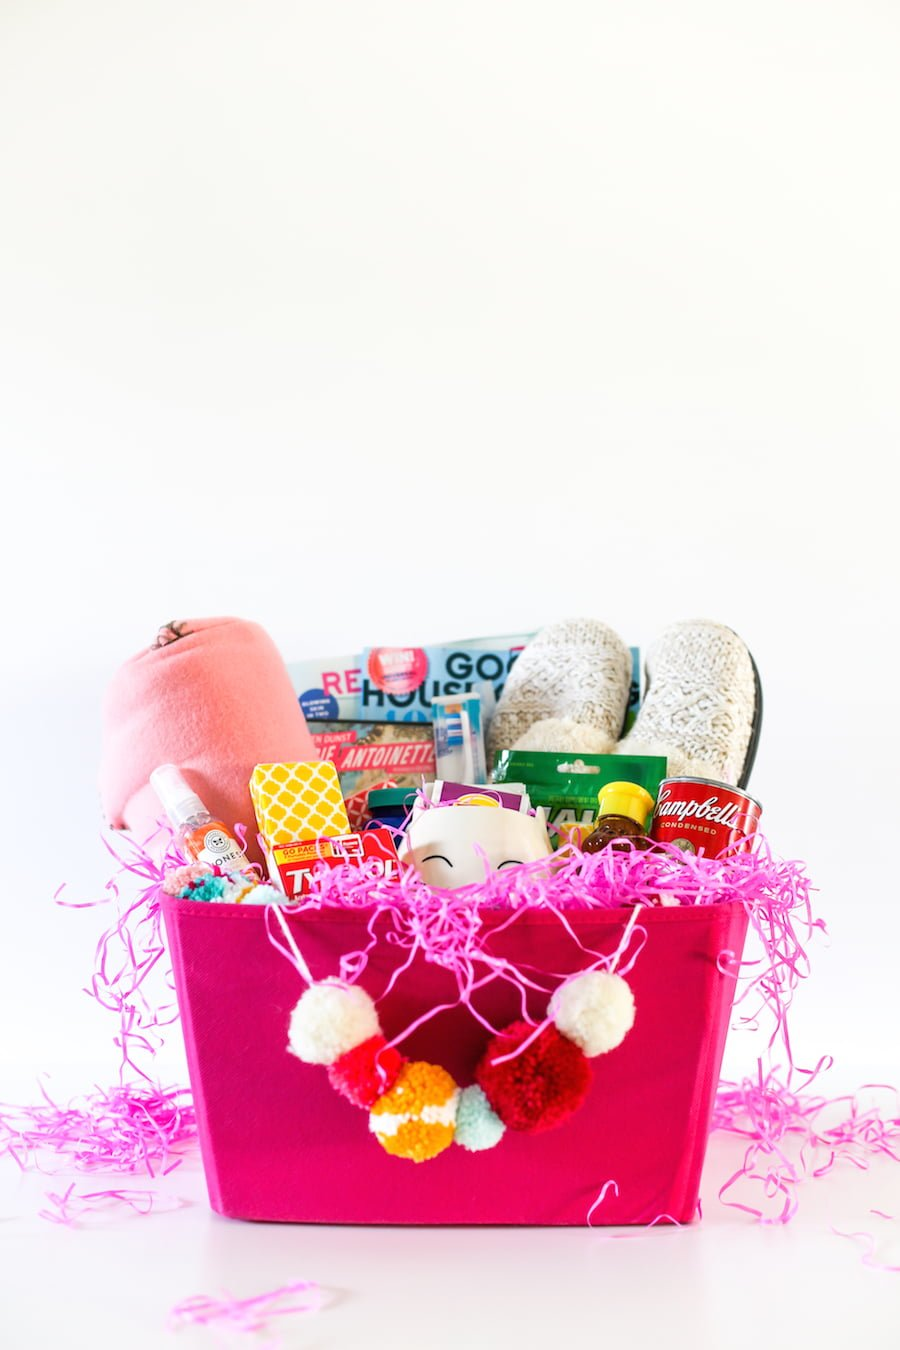 DIY Cold and Flu Care Package, Get Well Soon Care Package, Cold and Flu Survival Kit, College Care Package, Cold and Flu Care Package for Girlfriend, Daughter, Sister, Friend, Mom, Flu Survival Kit, Gift Ideas, Gift Basket